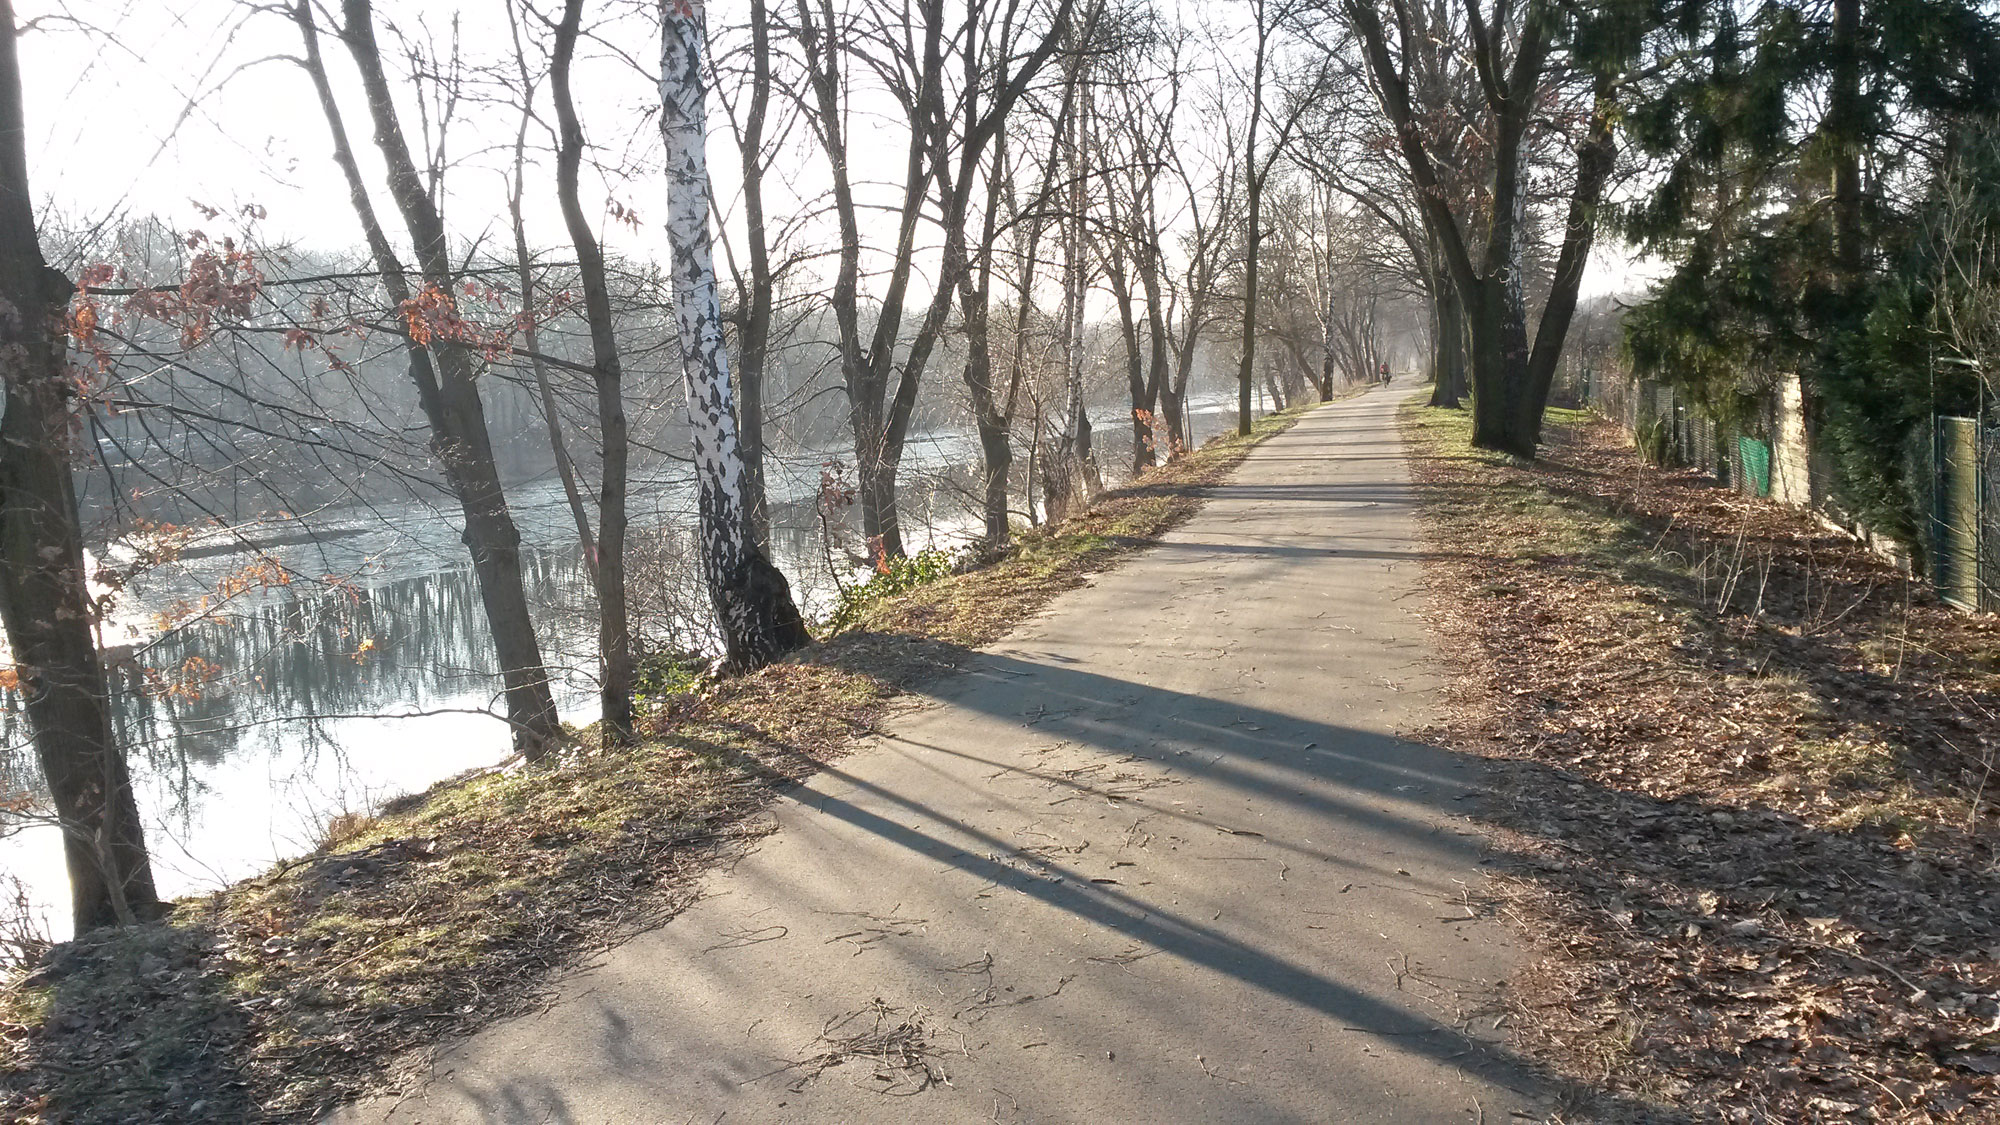 13 February 2015: A trip to Tegel. These paths are nice in theory, but not suitable for fast biking because of pedestrians.